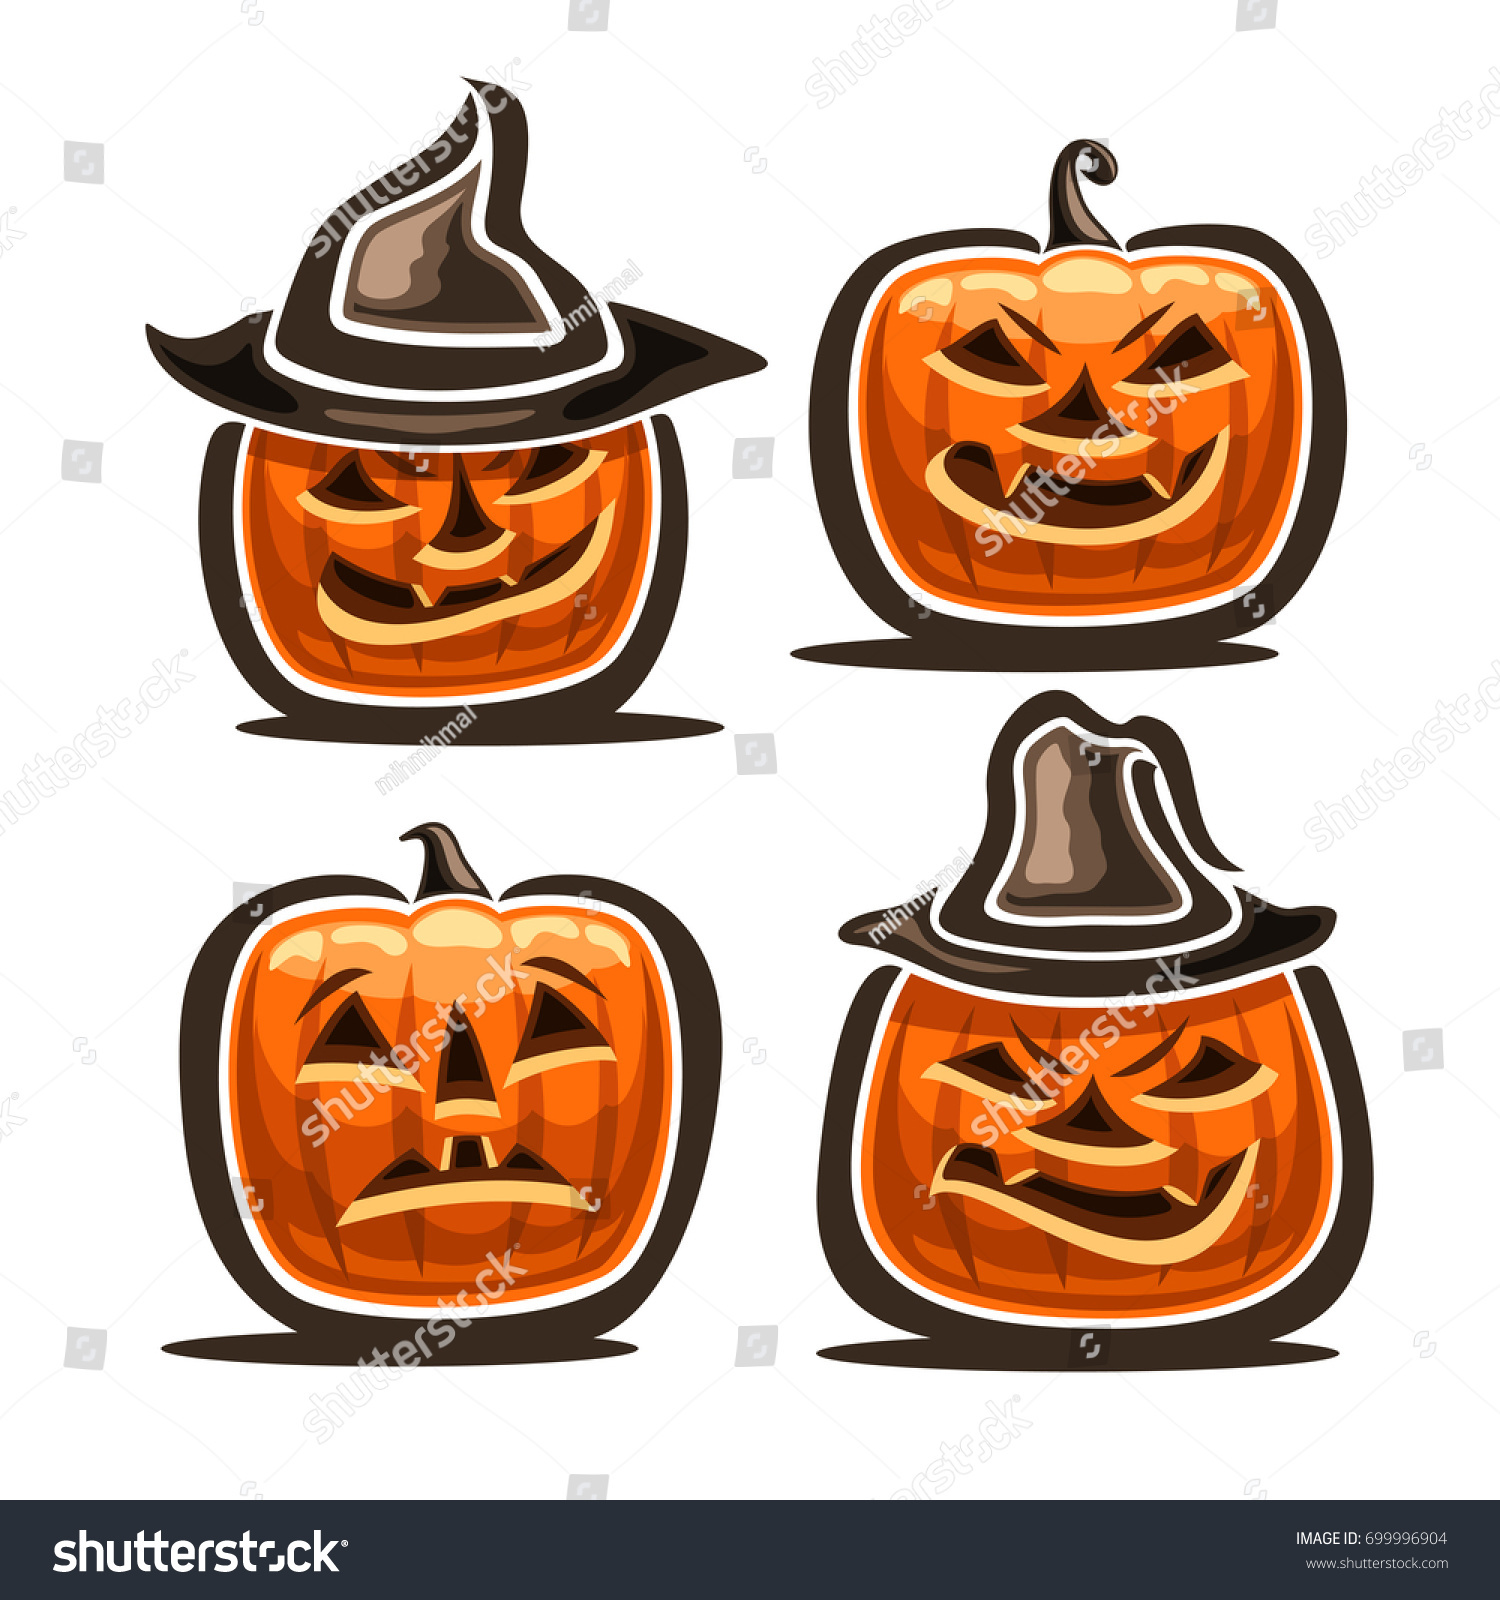 vector set halloween pumpkins 4 orange stock vector (royalty free